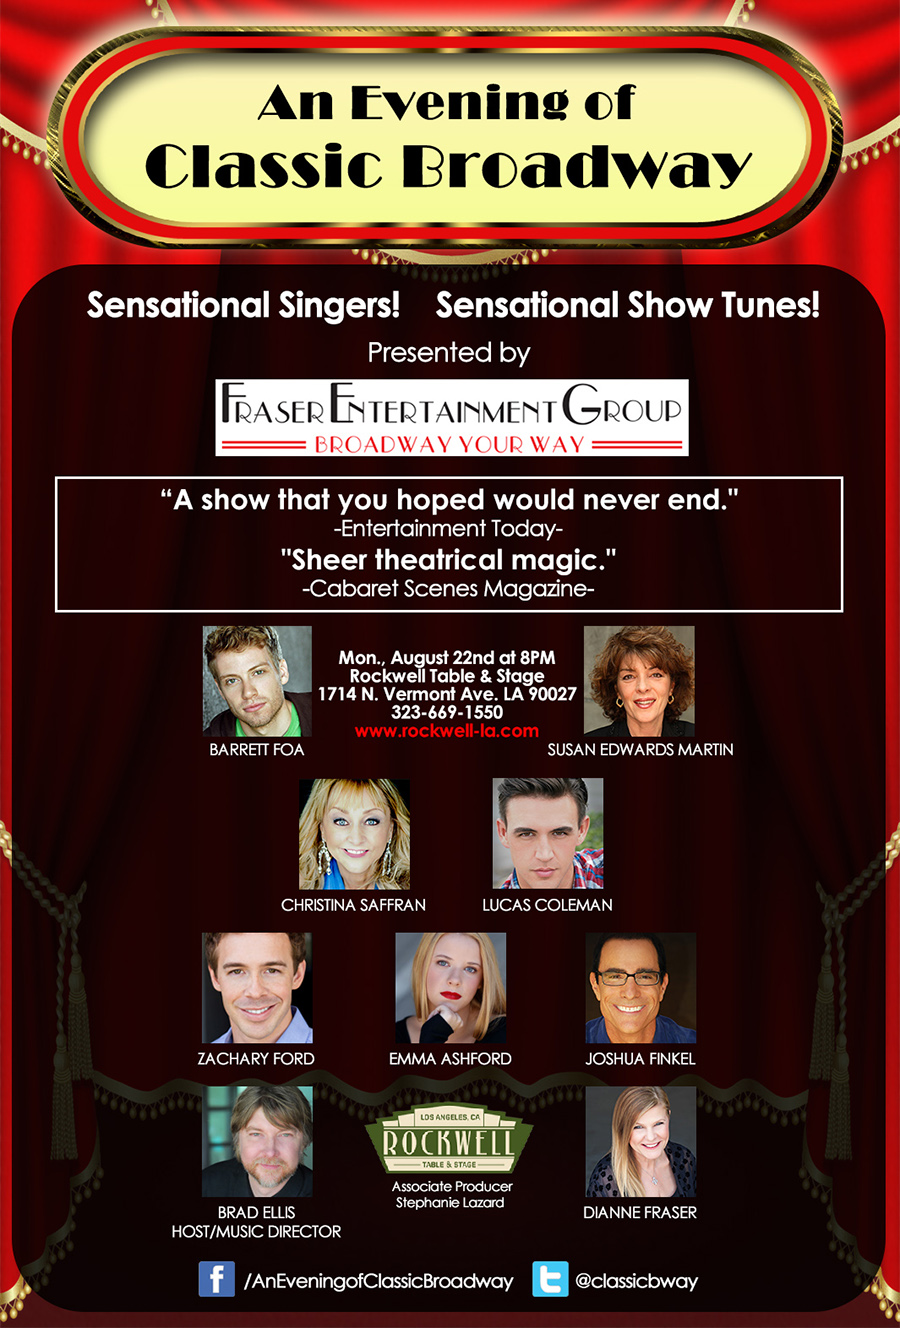 August 22: An Evening of Classic Broadway